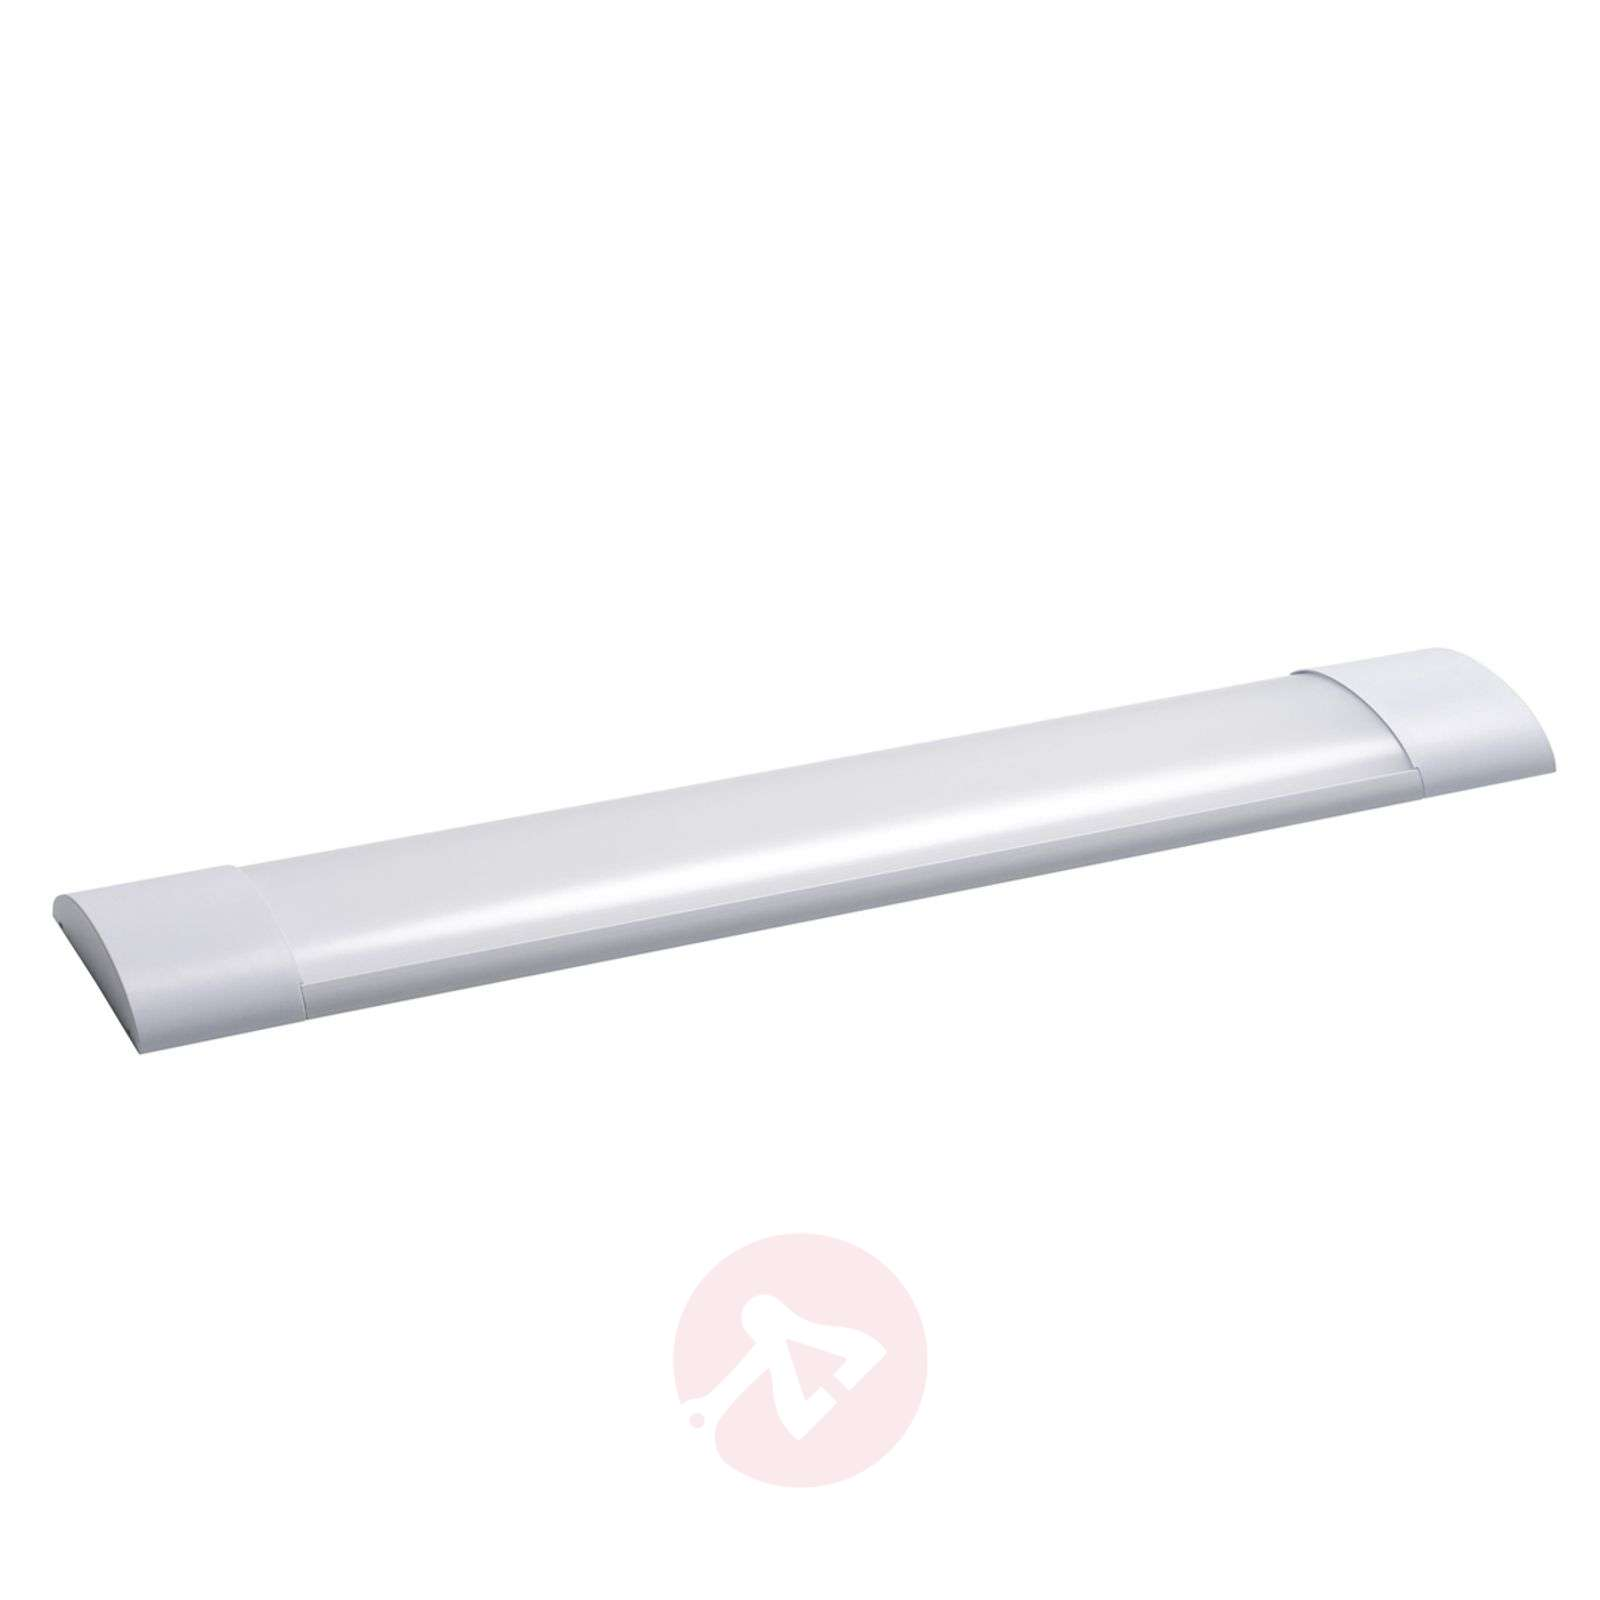 Lampa sufitowa LED Office Dim Flat , dł. 121,3 cm